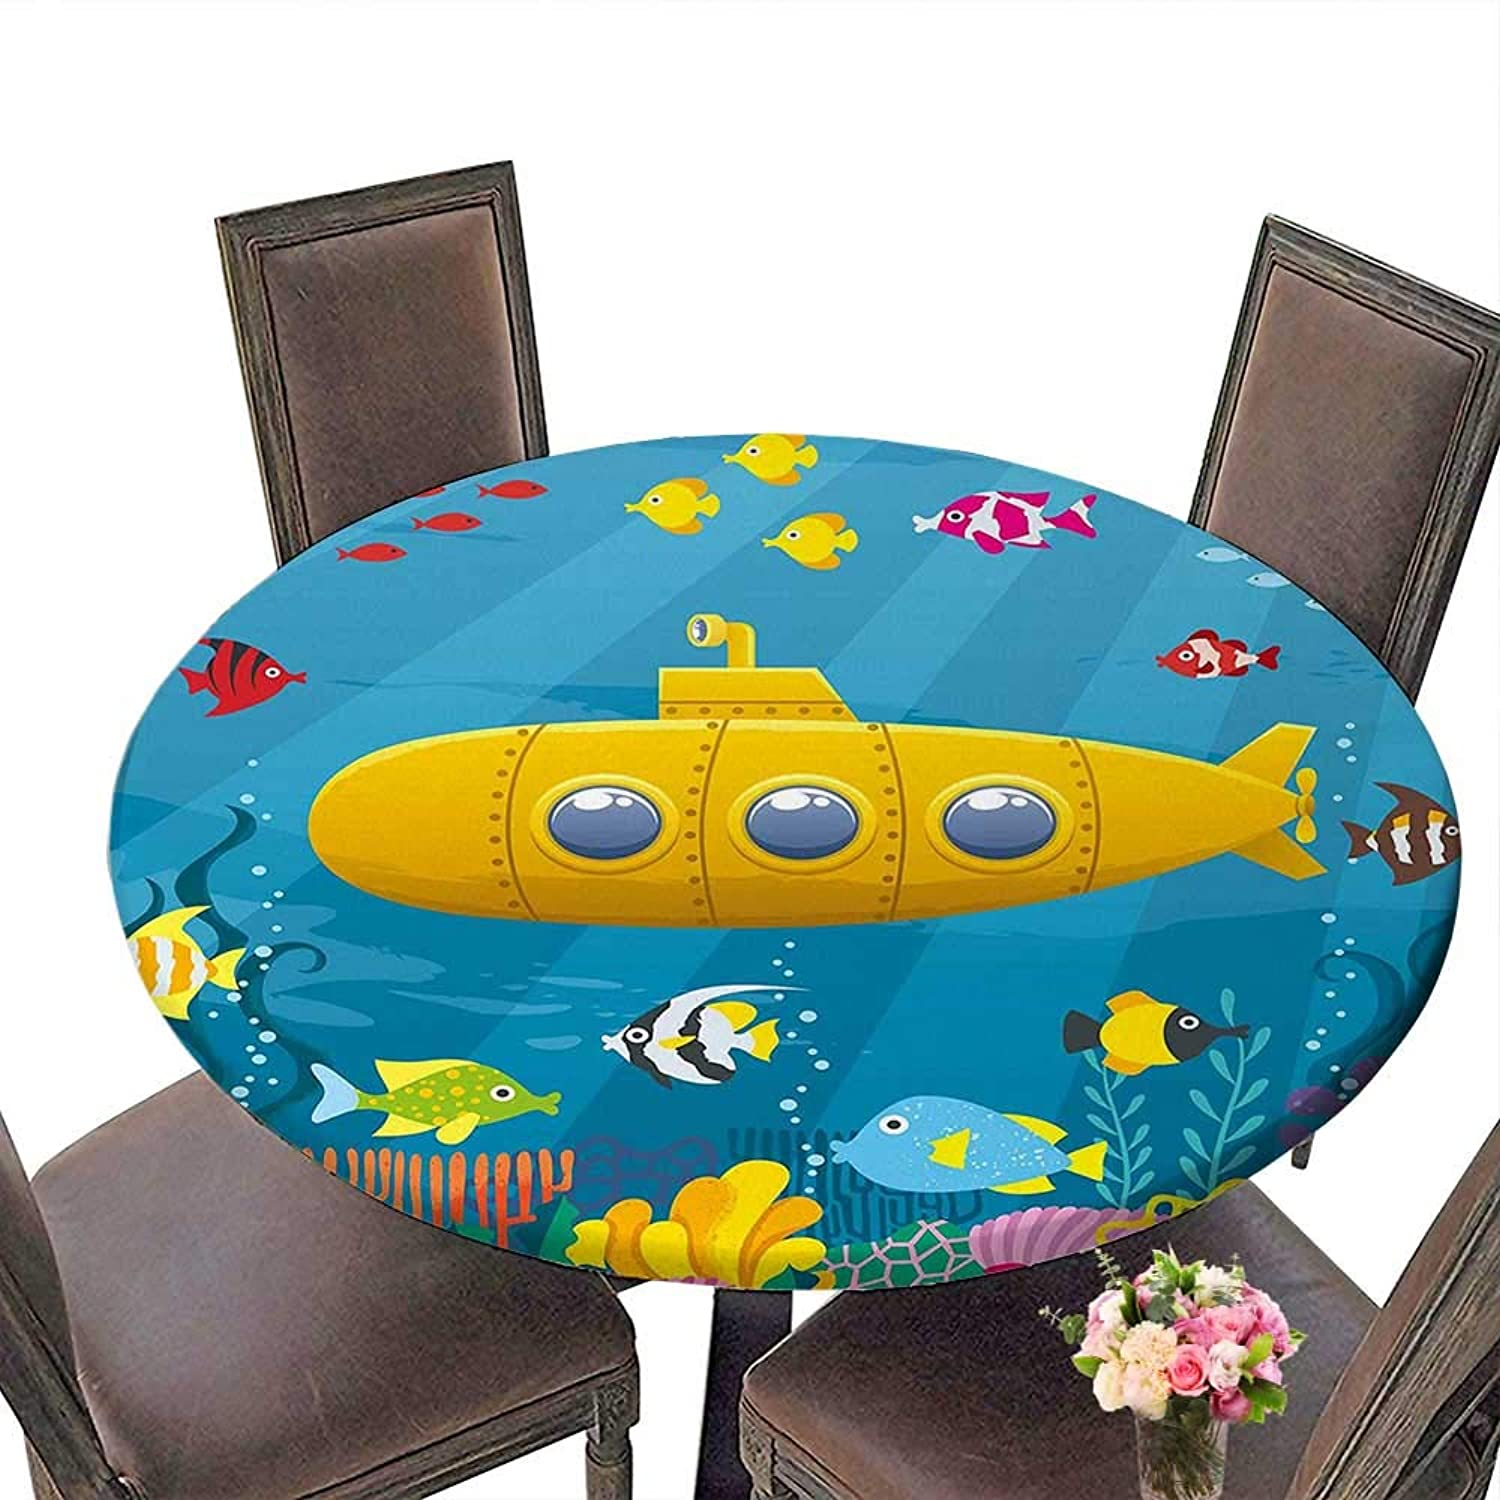 RoundTable Cloth for Foot Table in Washable Polyester(Elastic Edge) suitable for all occasions, (72.5 round)Yellow Submarine Coral Reef with colorful Fish Ocean Life Marine Creatures Tropical Kids Bl